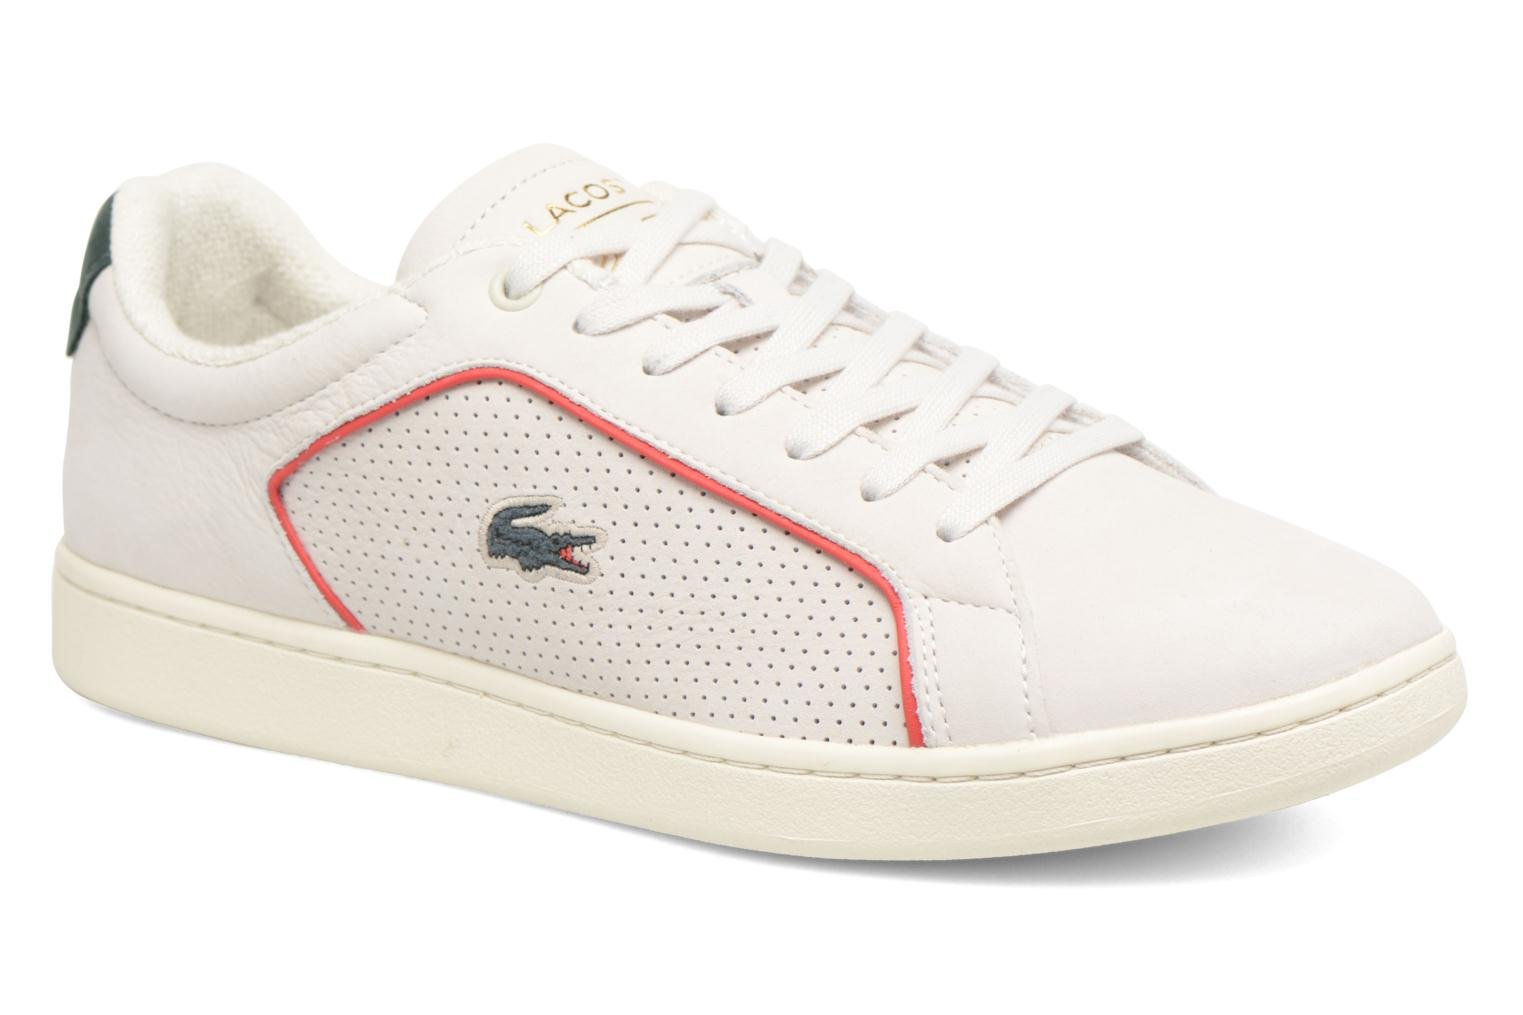 Chaussures De Sport Lage Carnaby Evo 218 1 Lacoste vXPTP